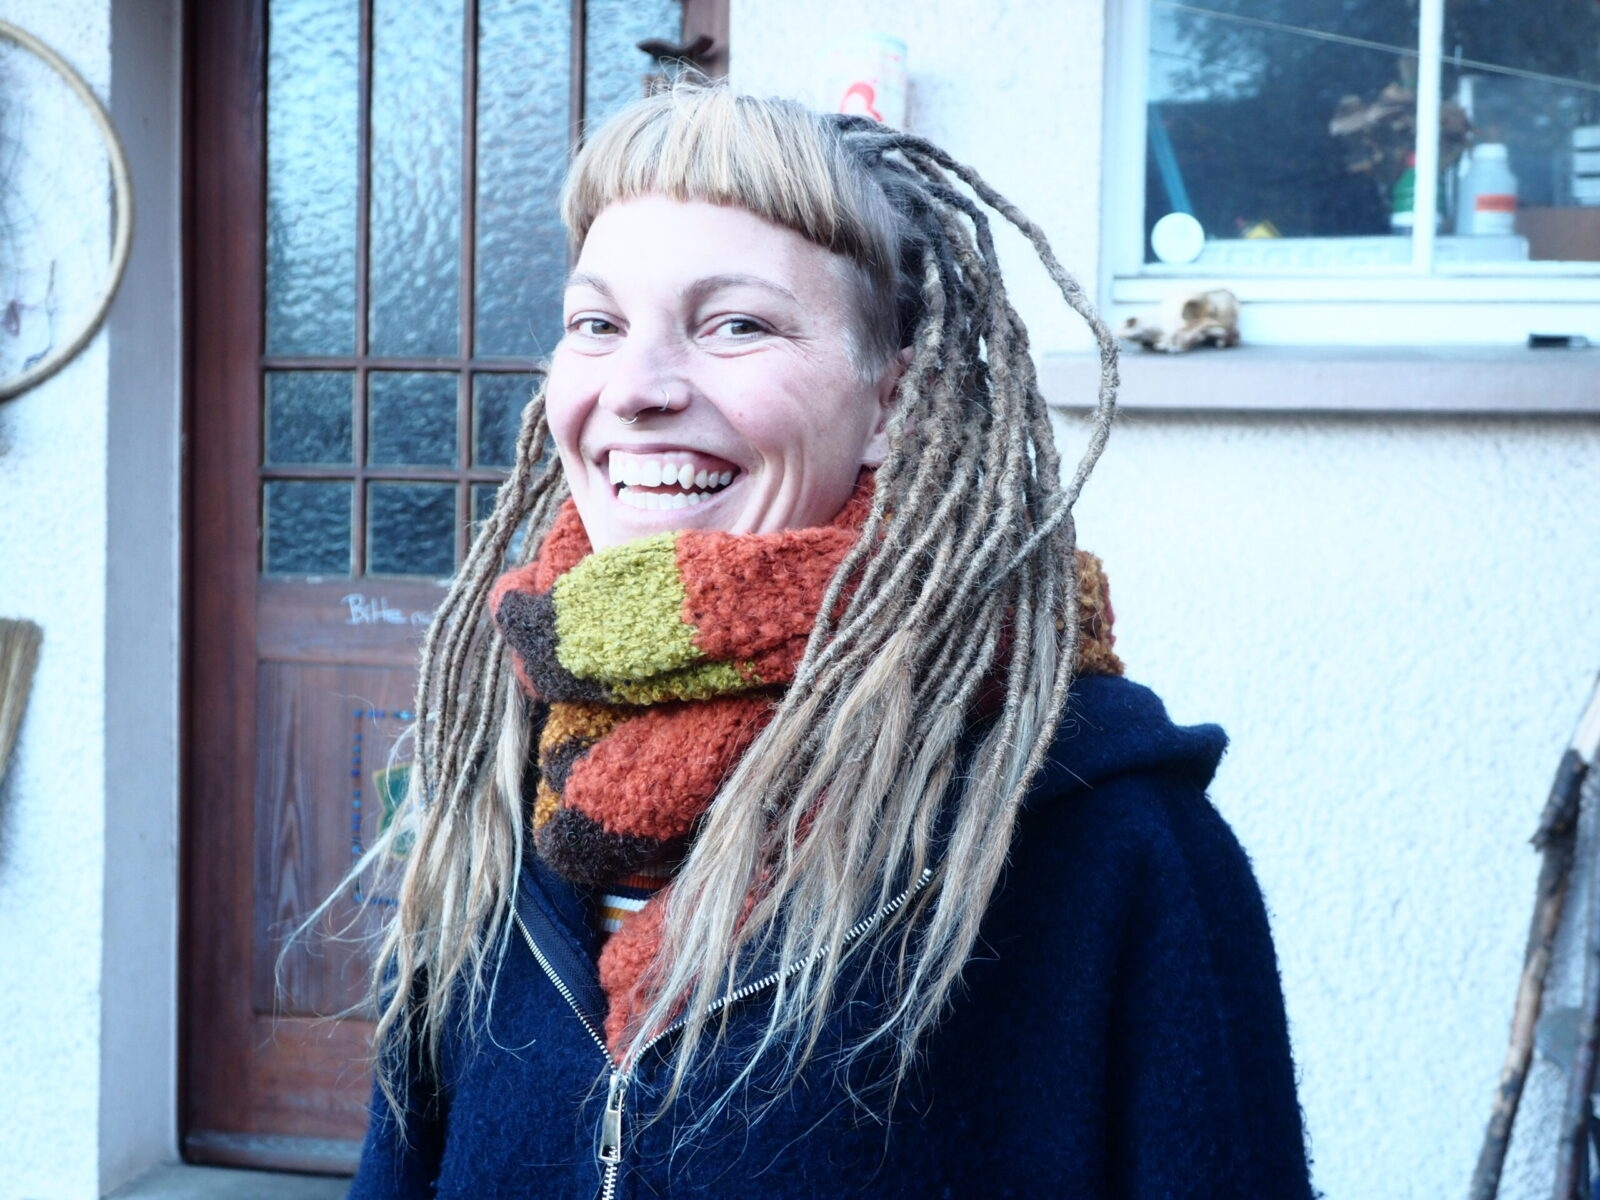 girl with dreads, dreads make happy